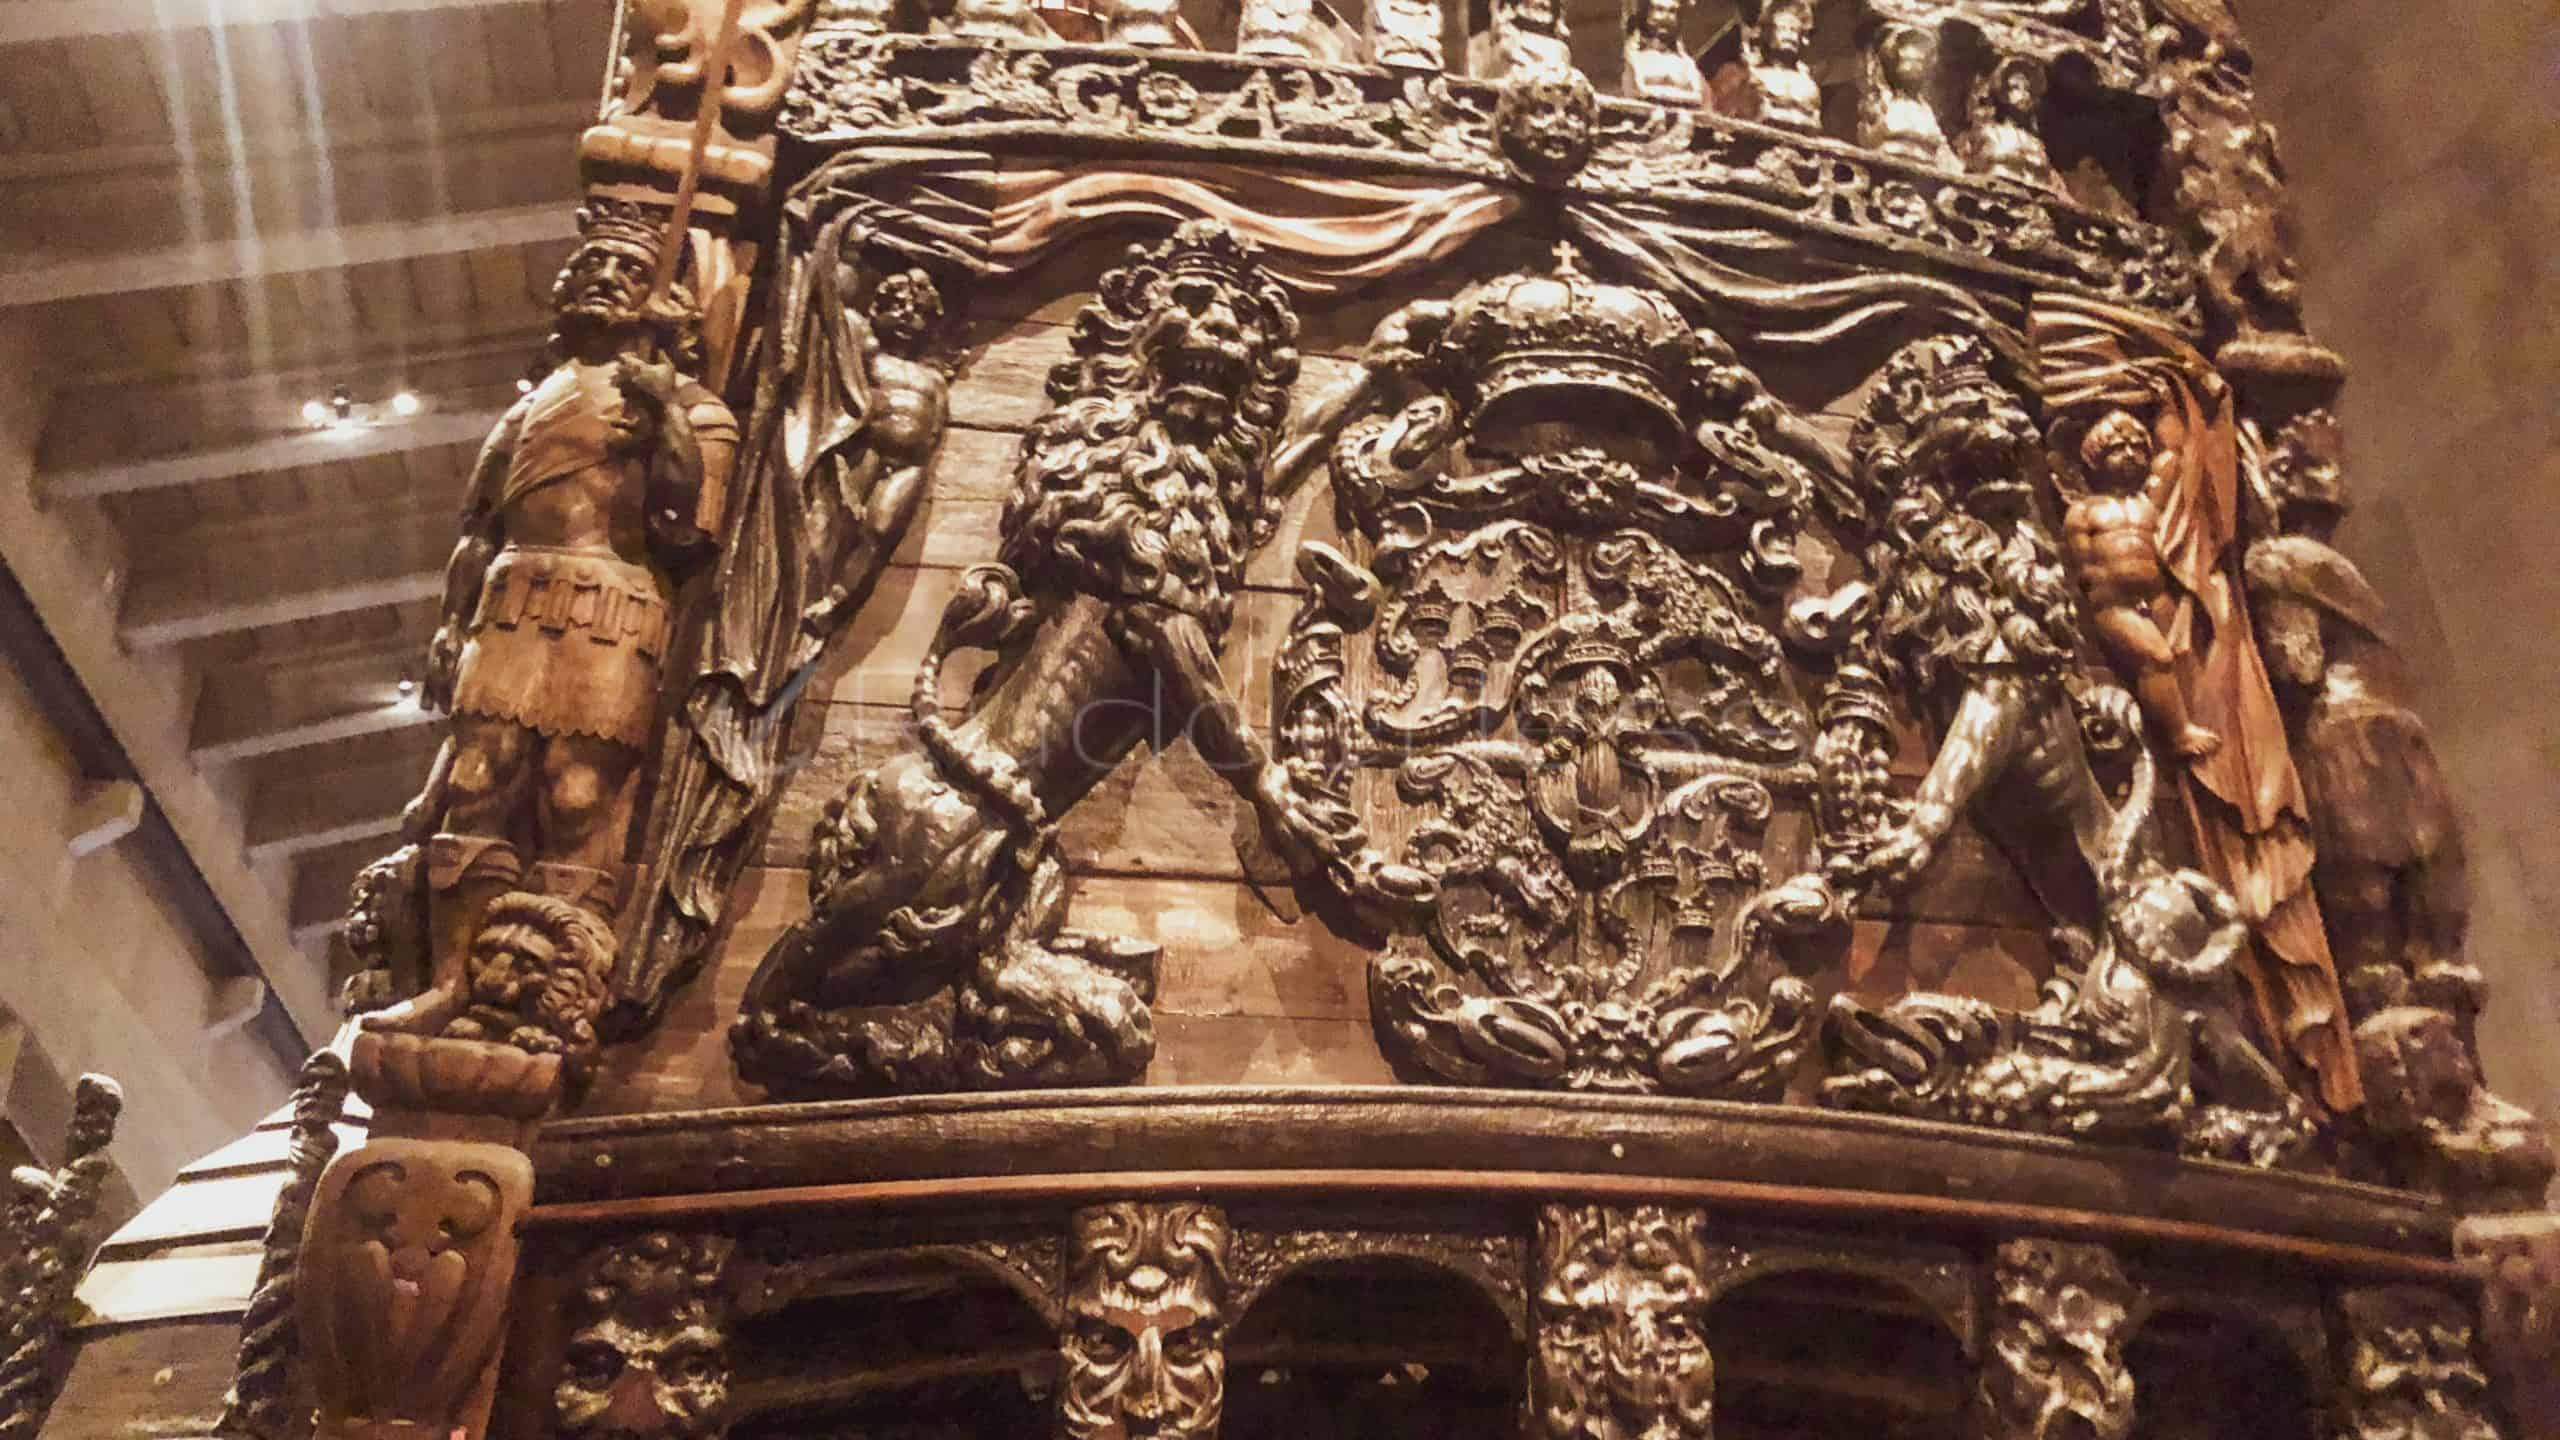 vasa museum - a stockholm must see